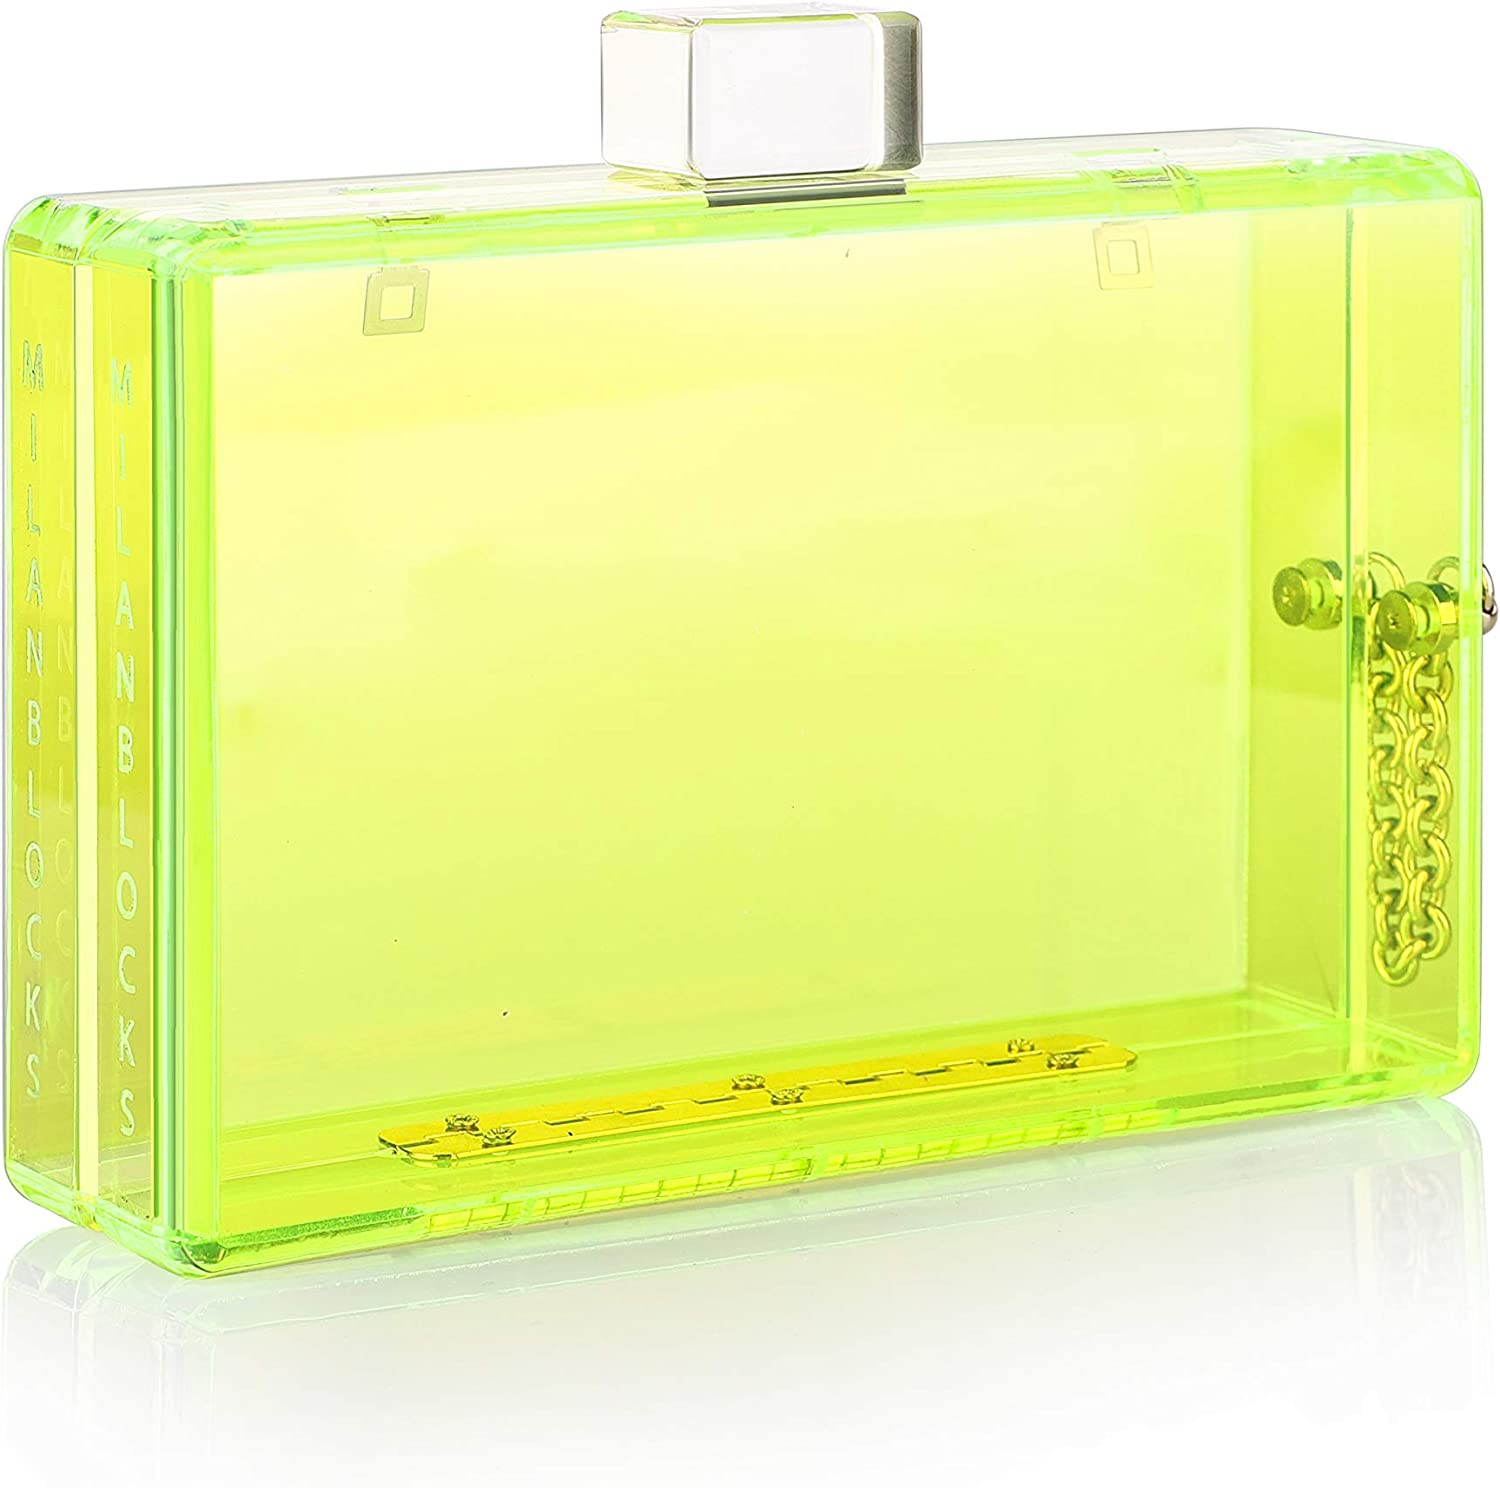 Neon Transparent Clear Acrylic Plastic Hard Party Clutch Purse